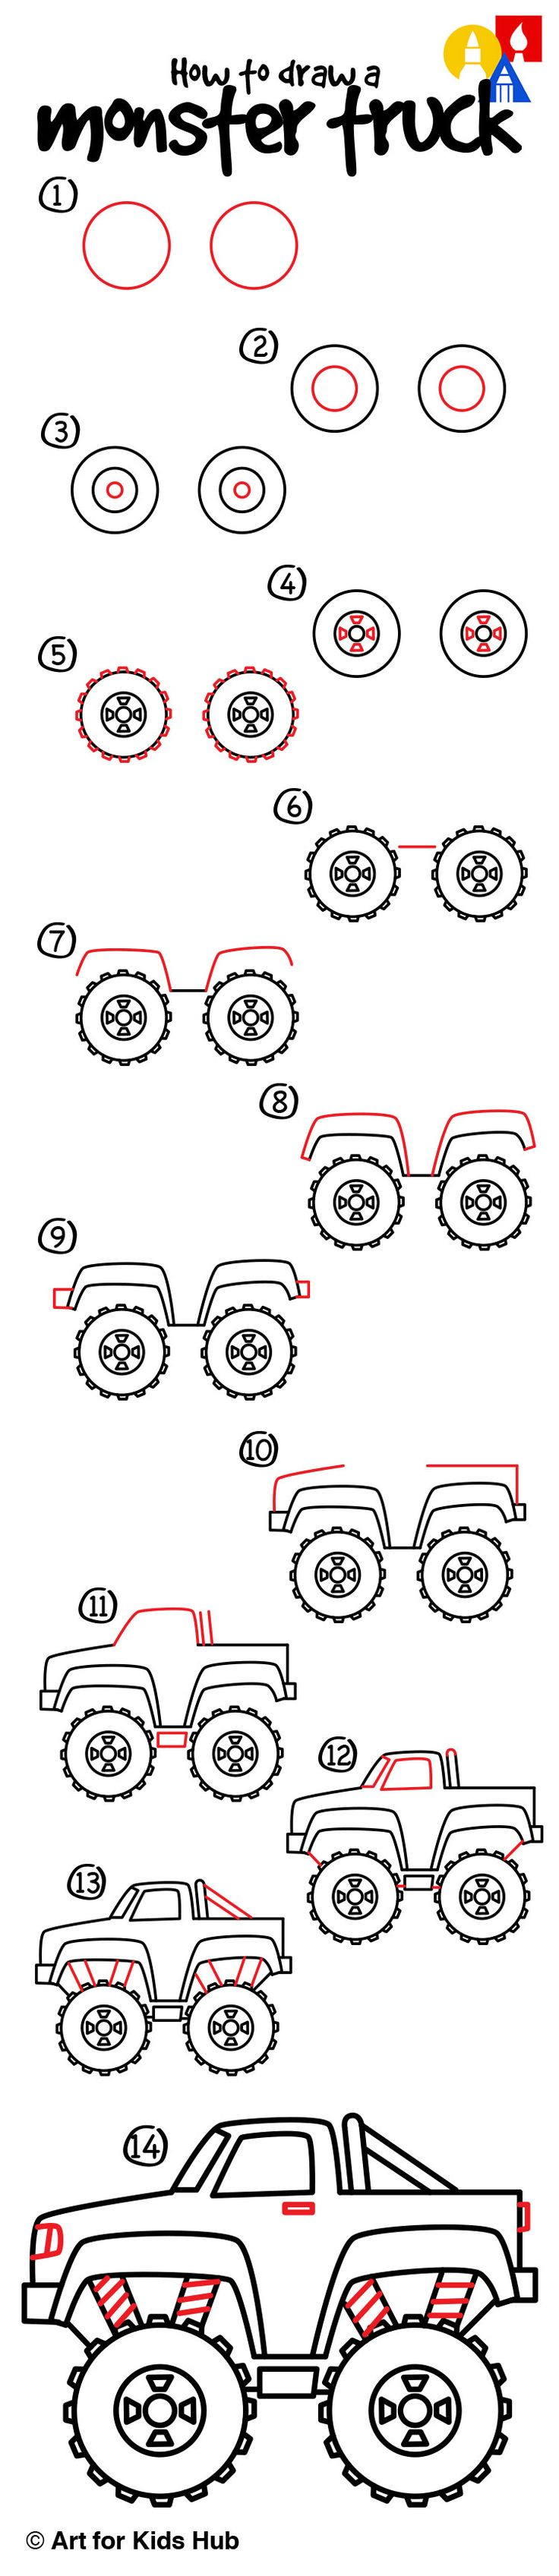 How to draw a monster truck!